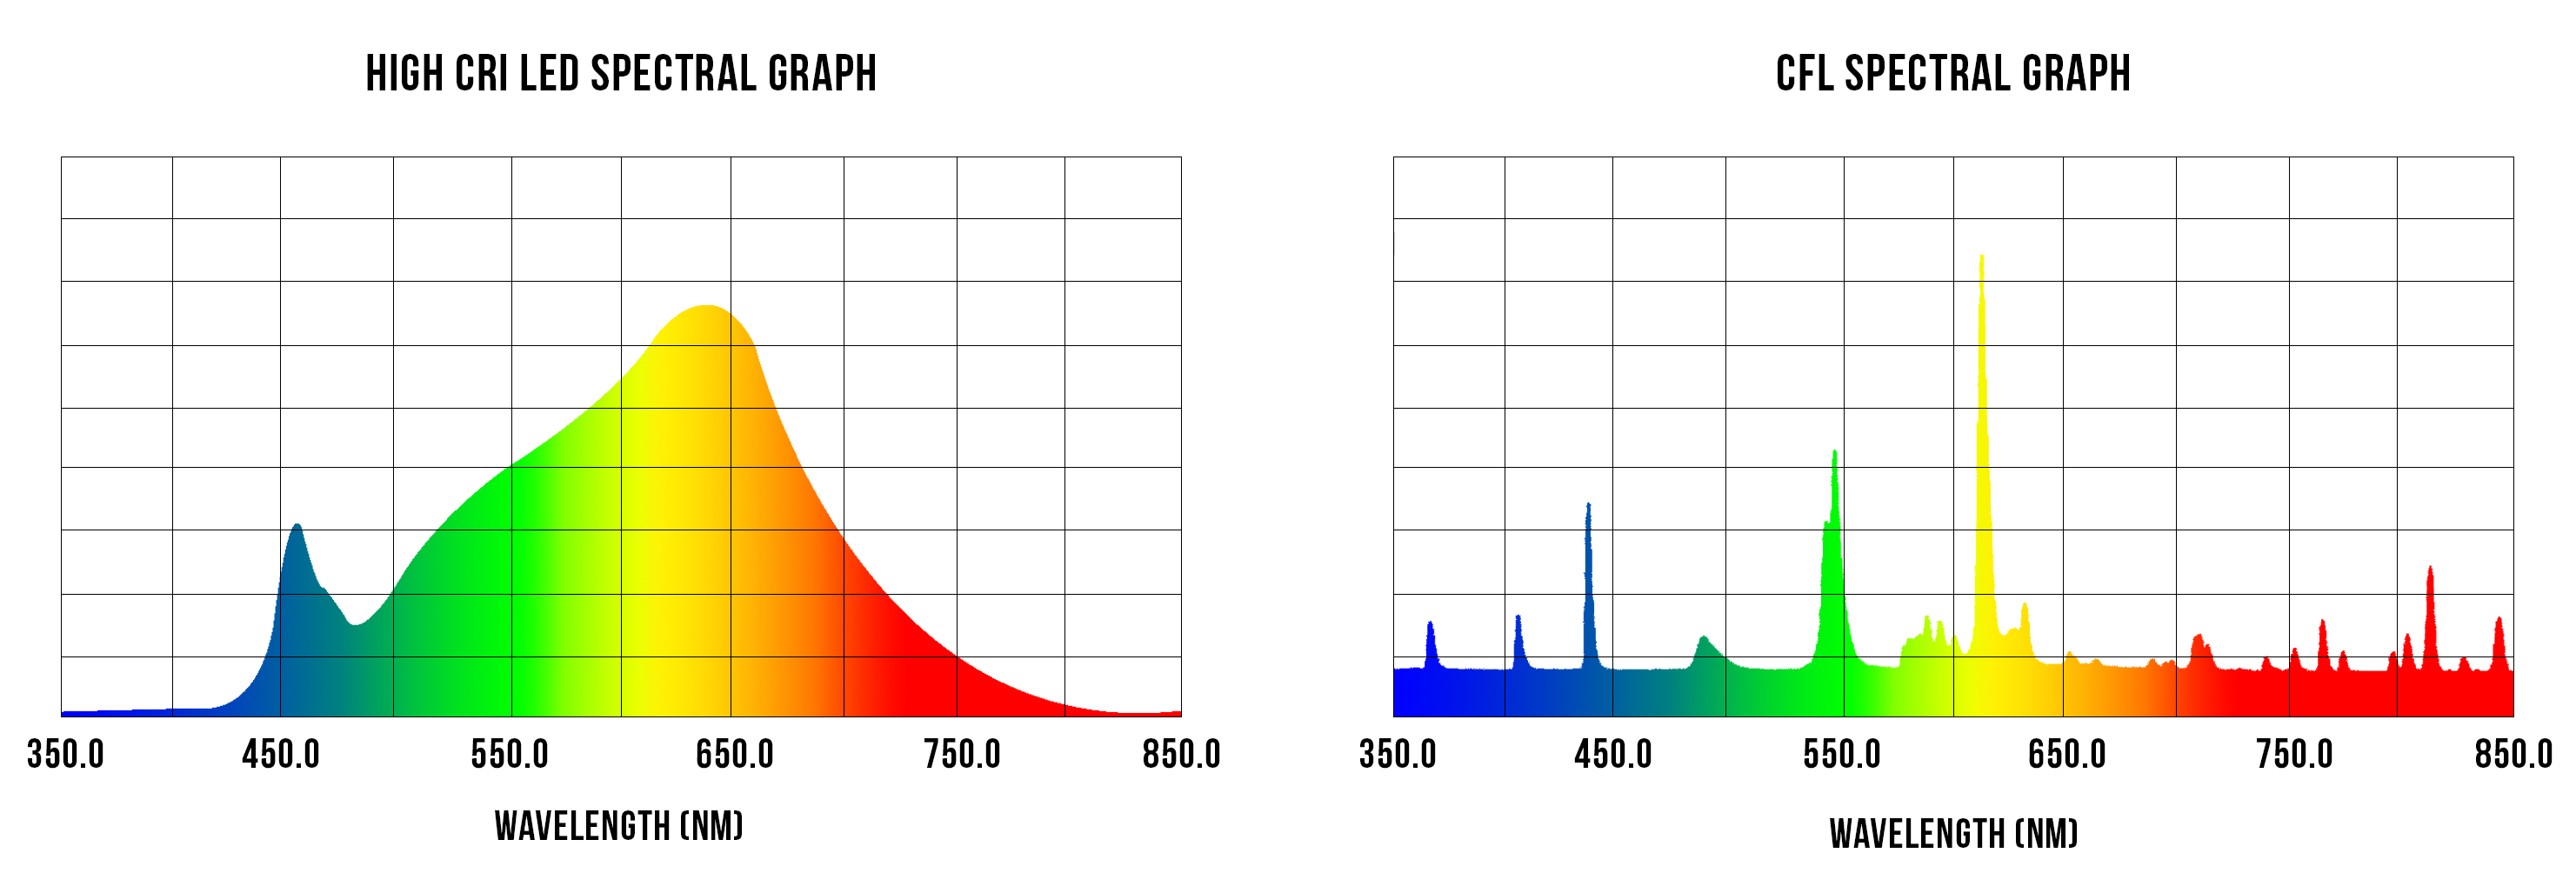 High CRI vs CFL Spectrum Graph - LED hospital lighting